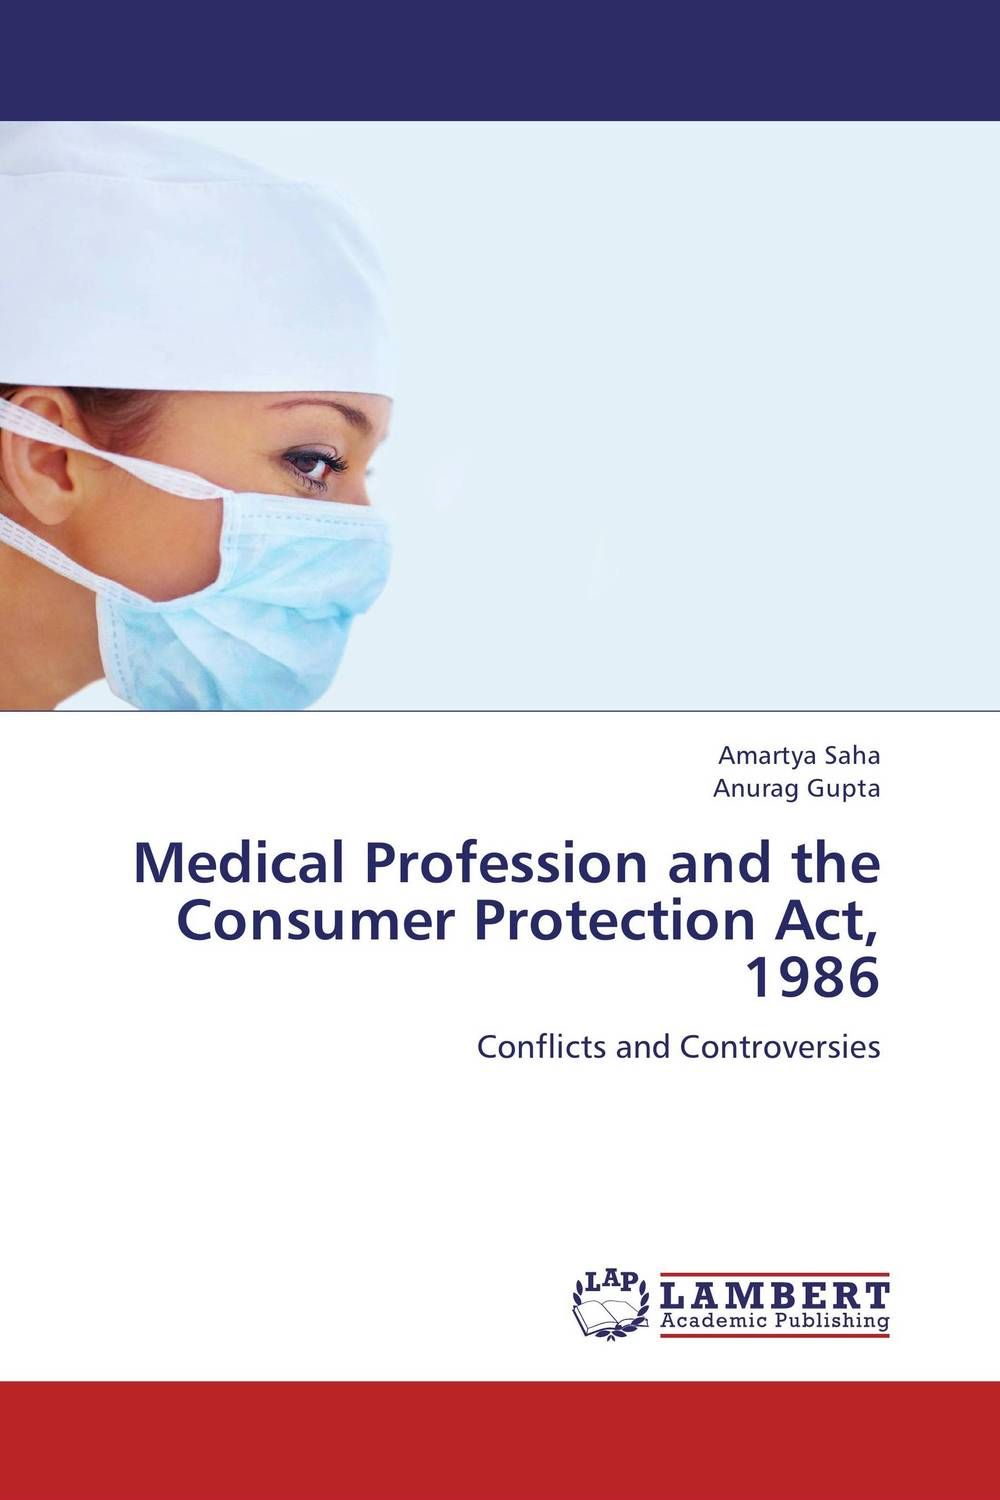 Medical Profession and the Consumer Protection Act, 1986